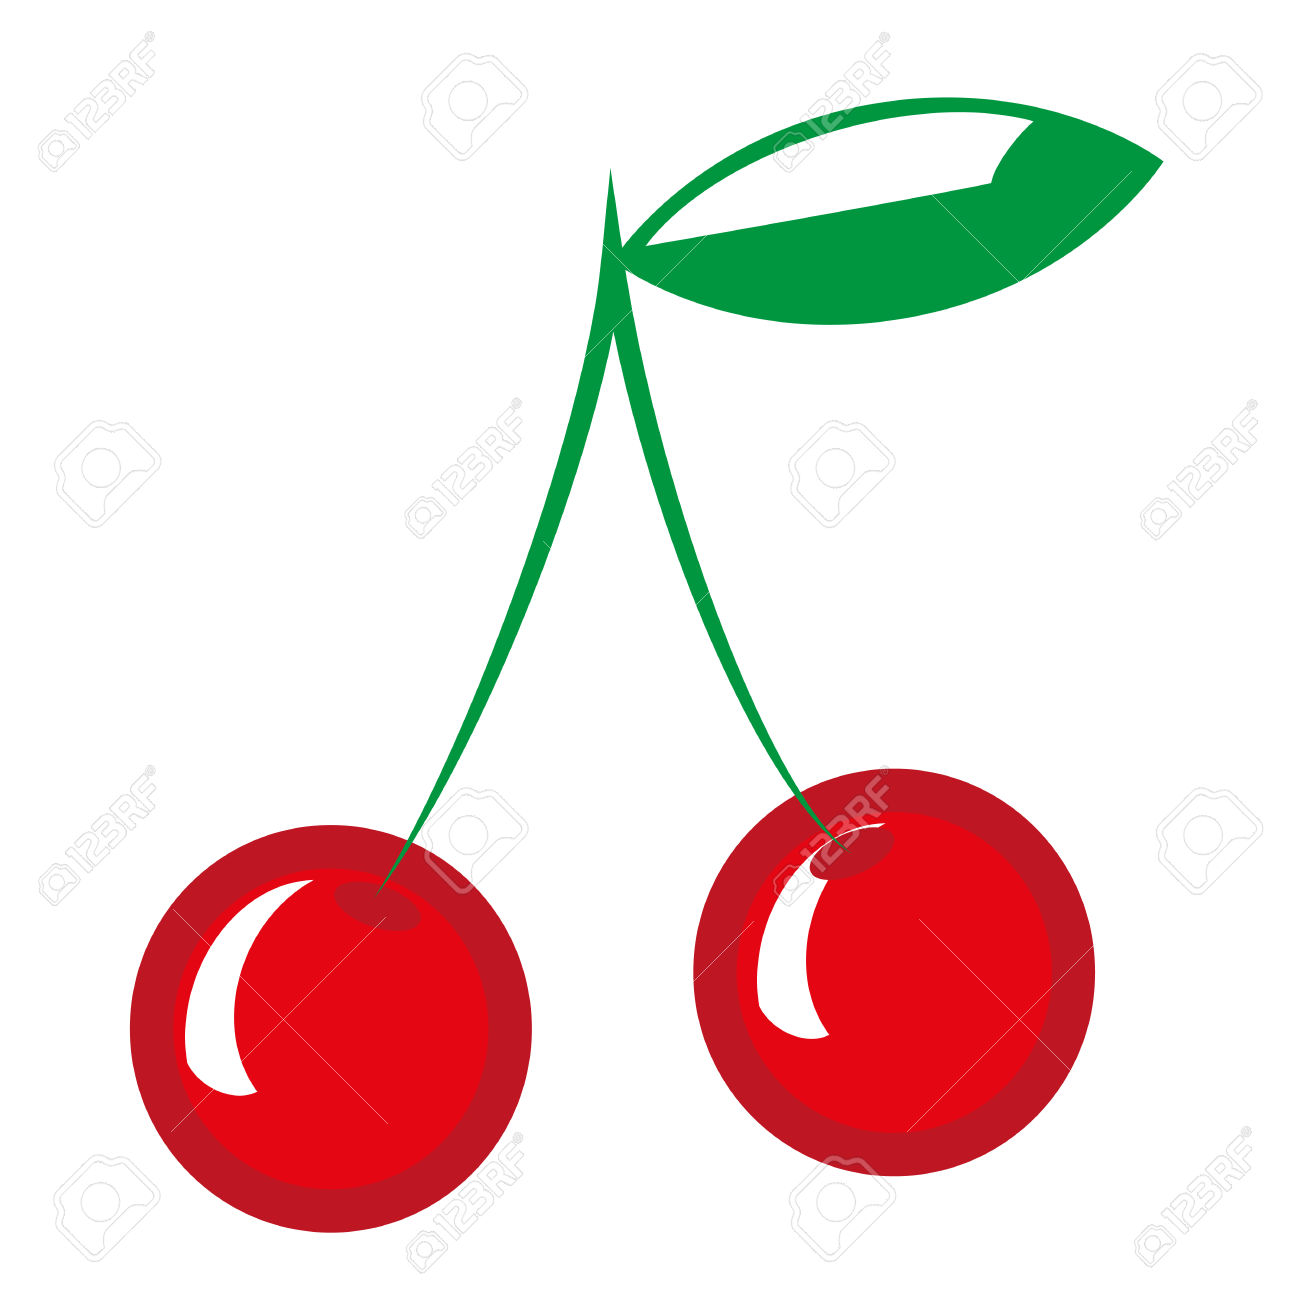 Two Sweet Cherries, Vector Illustration. Clip Art Royalty Free.